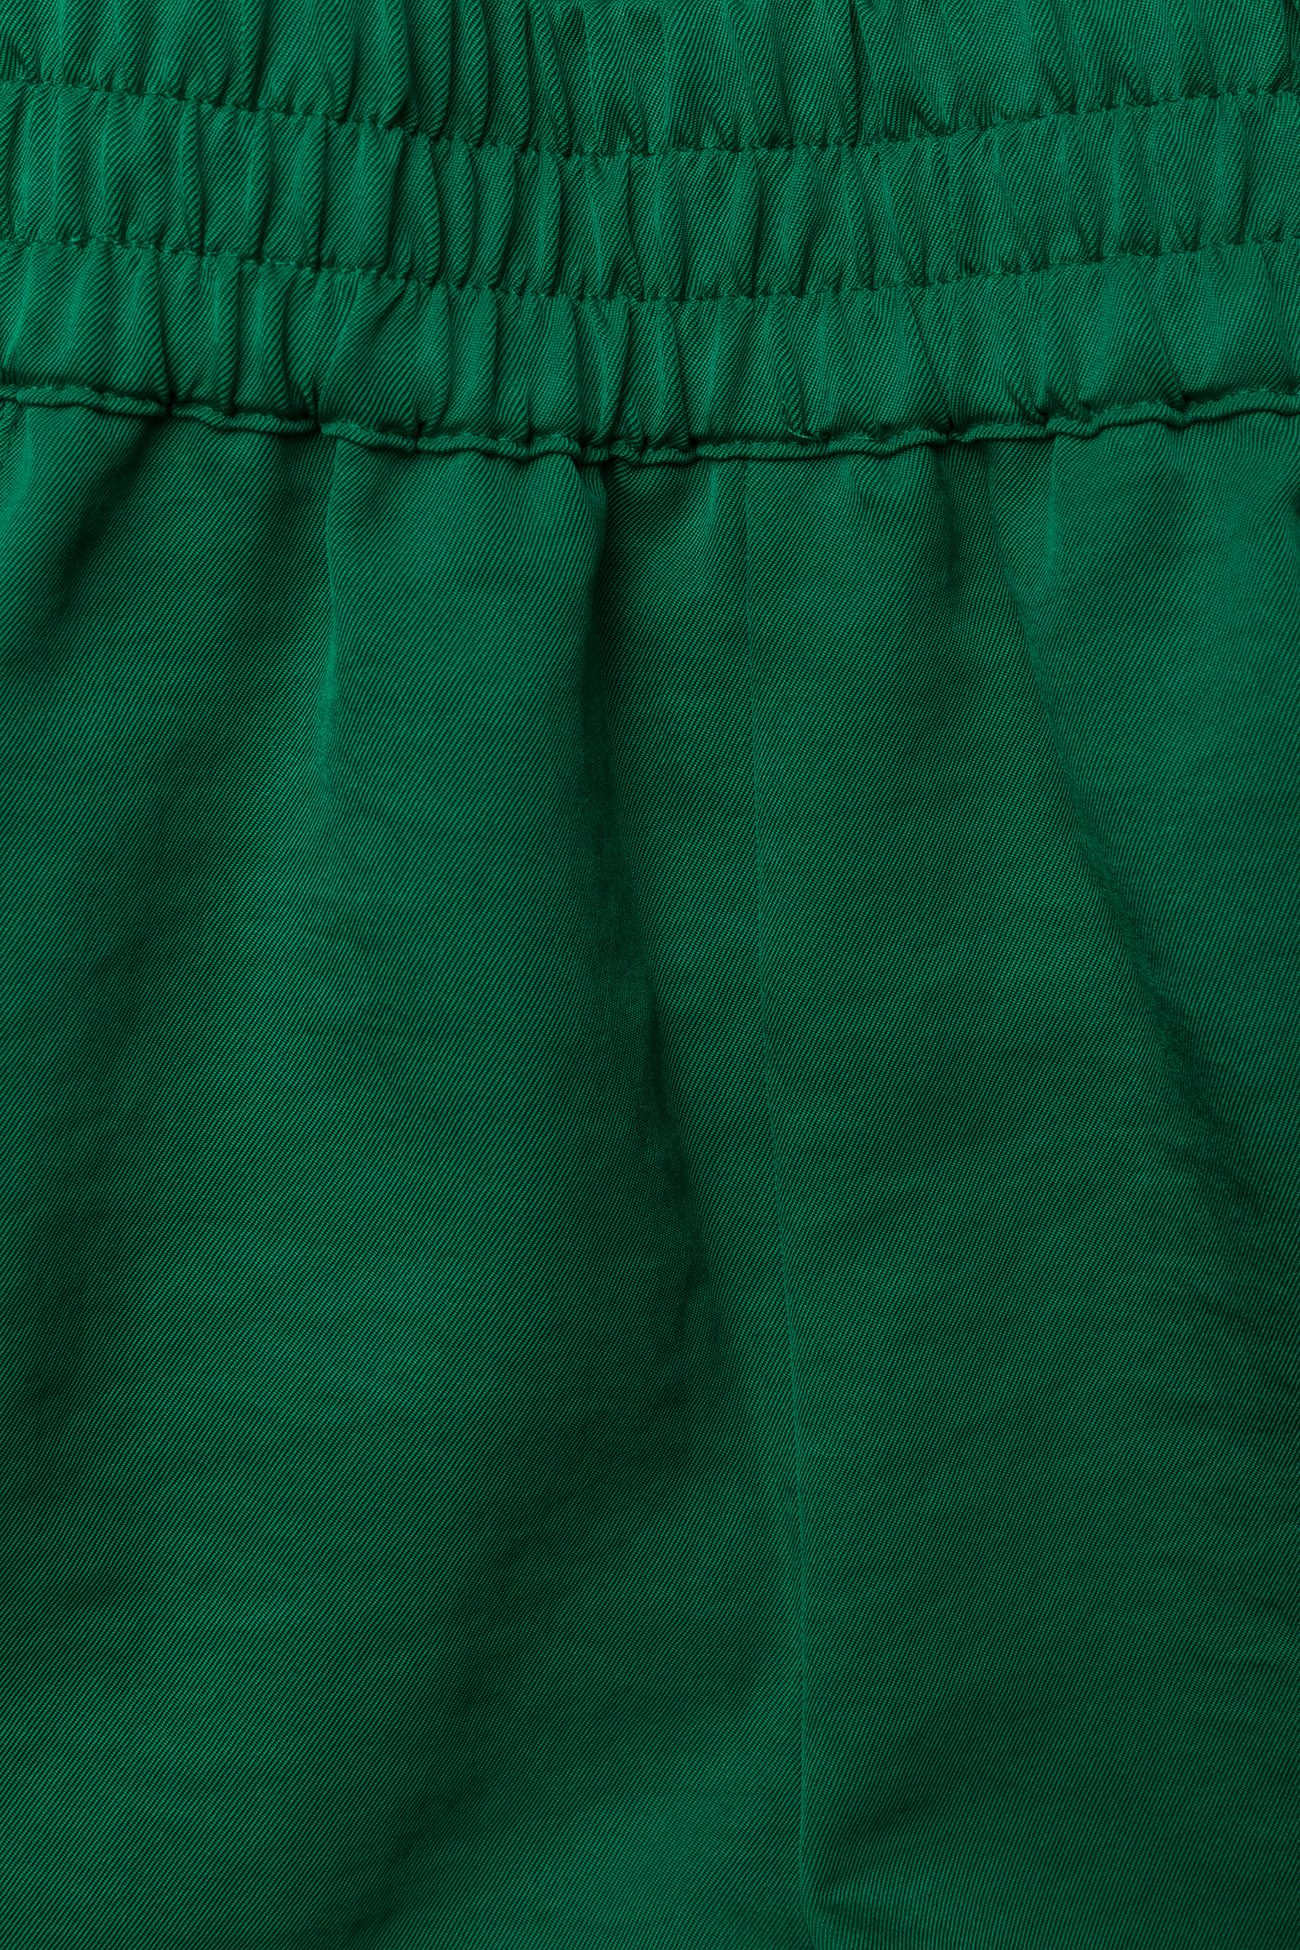 Pants Side Soda Tailored Velvet With Tapesbright GreenScotchamp; QdoeWrBxC